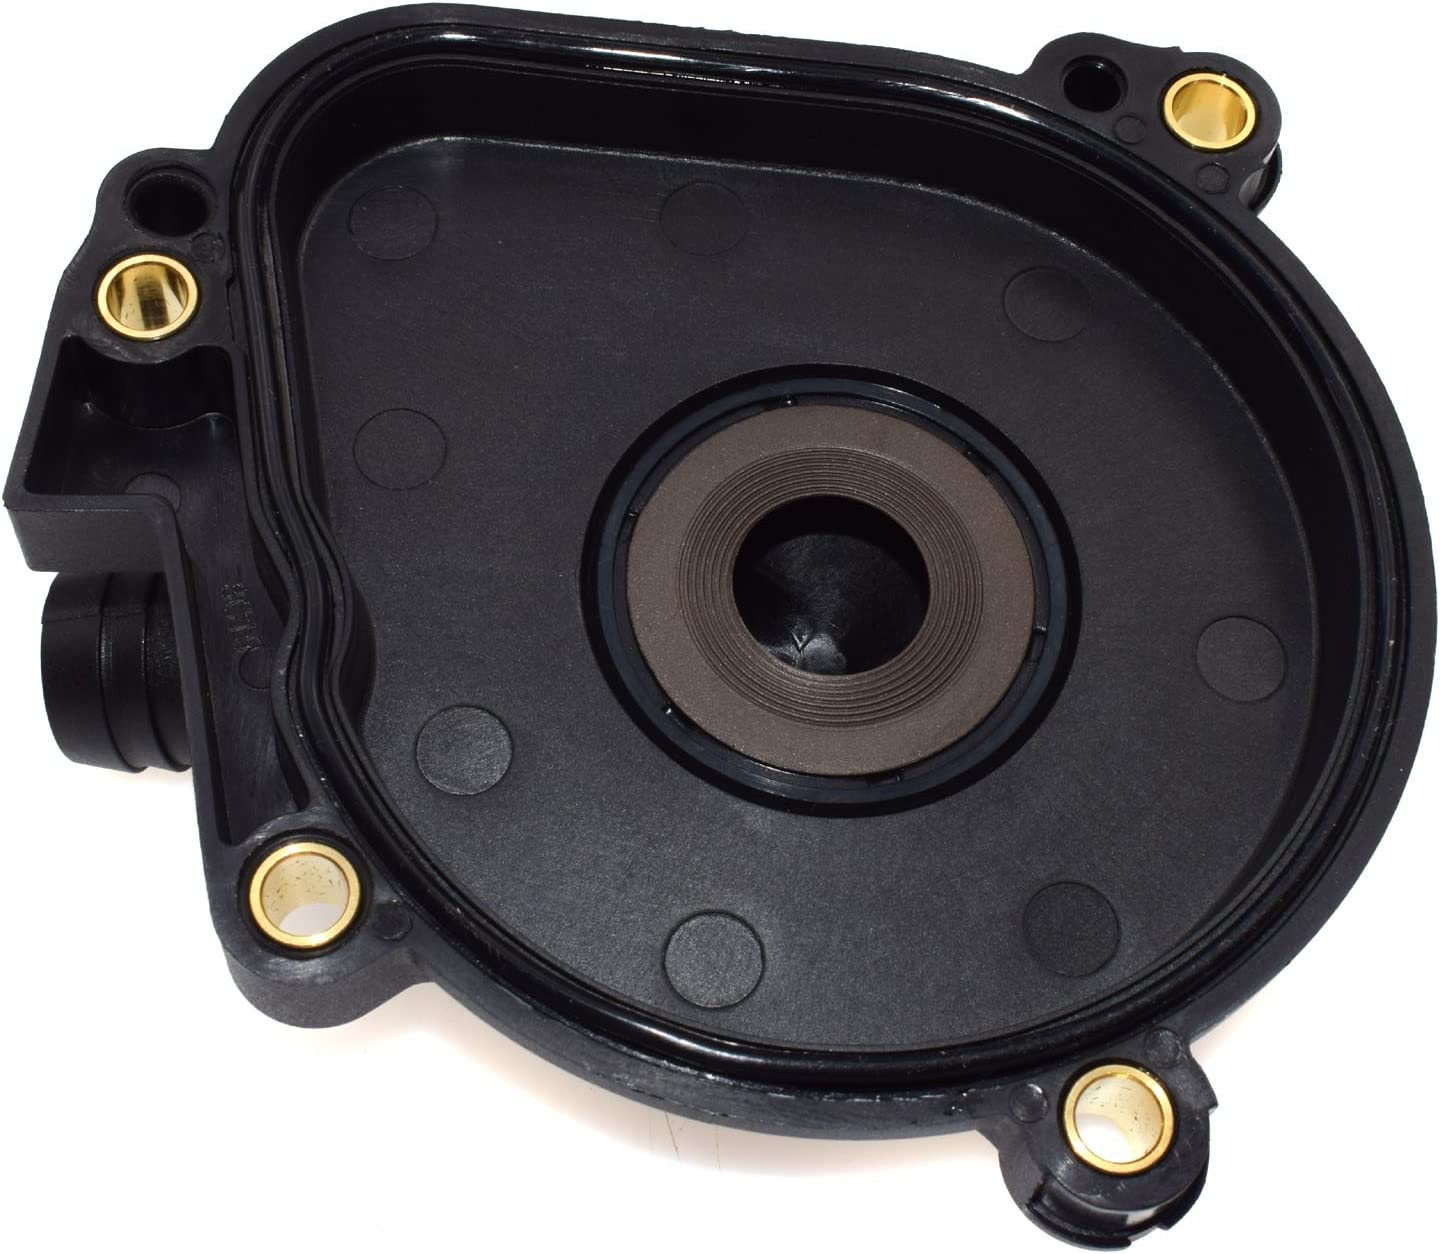 Engine Oil Separator Cover /& Oil Filter Housing Gasket For Mercedes-Benz W211 C230//280//300 CL550 CLK350 CLS550 E350 E550